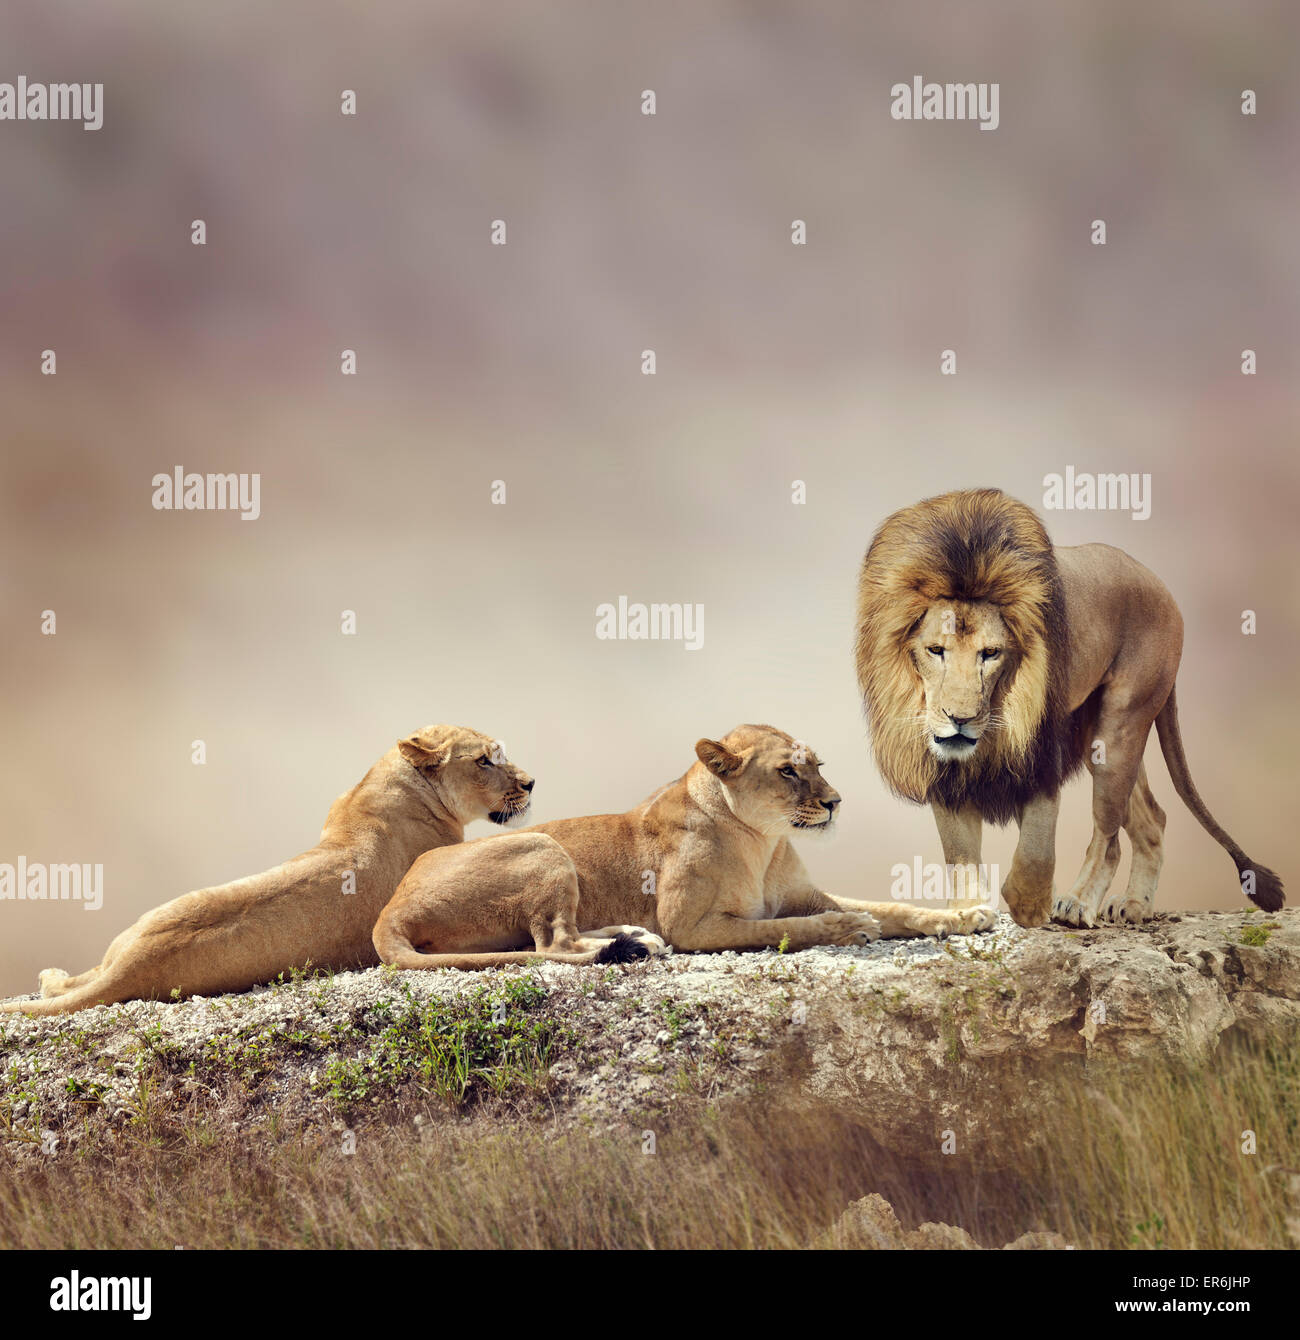 Family of Lions On A Rock - Stock Image